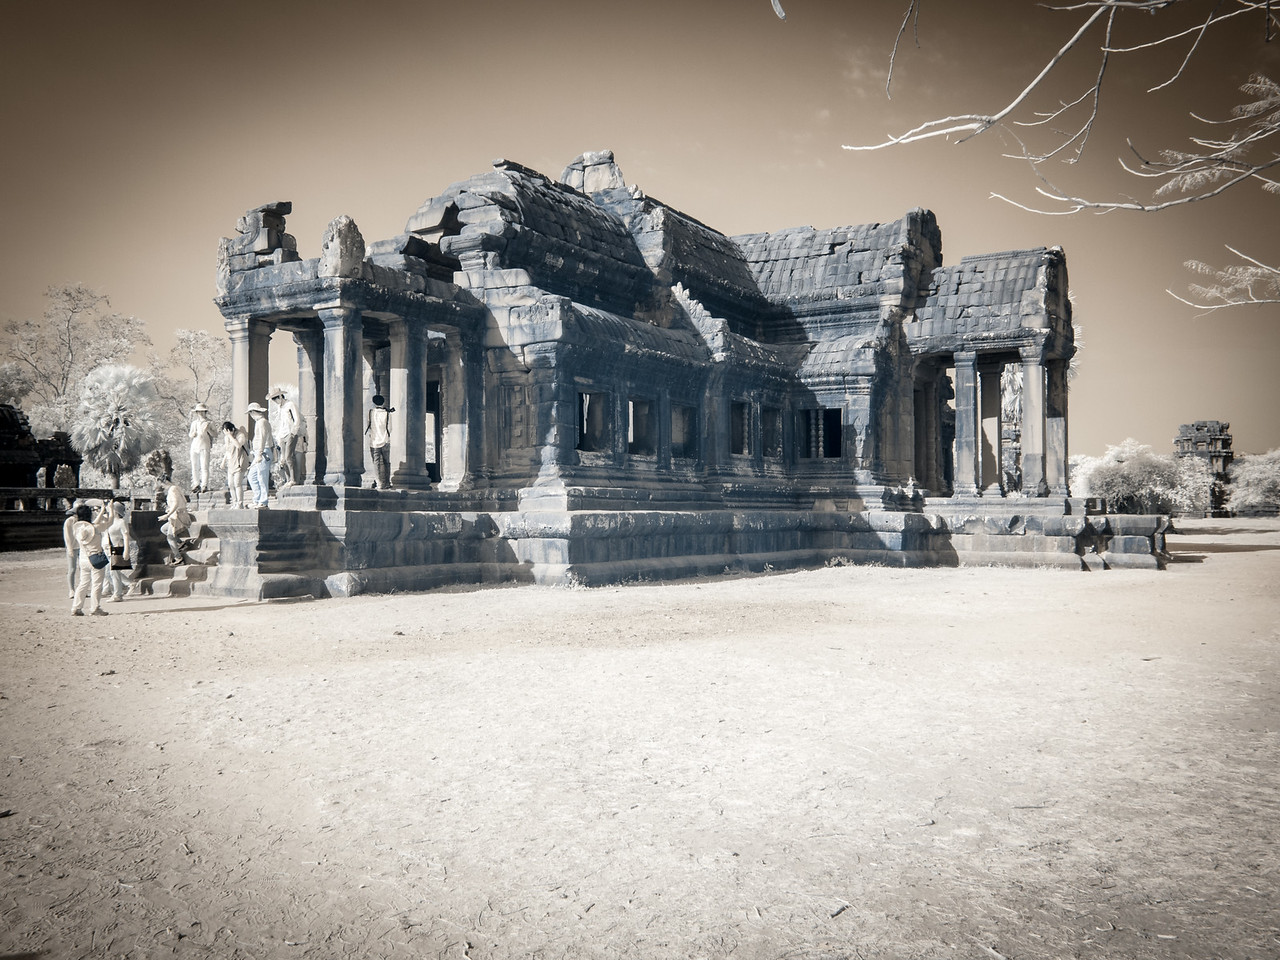 One of the libraries at Angkor Wat in Infrared.